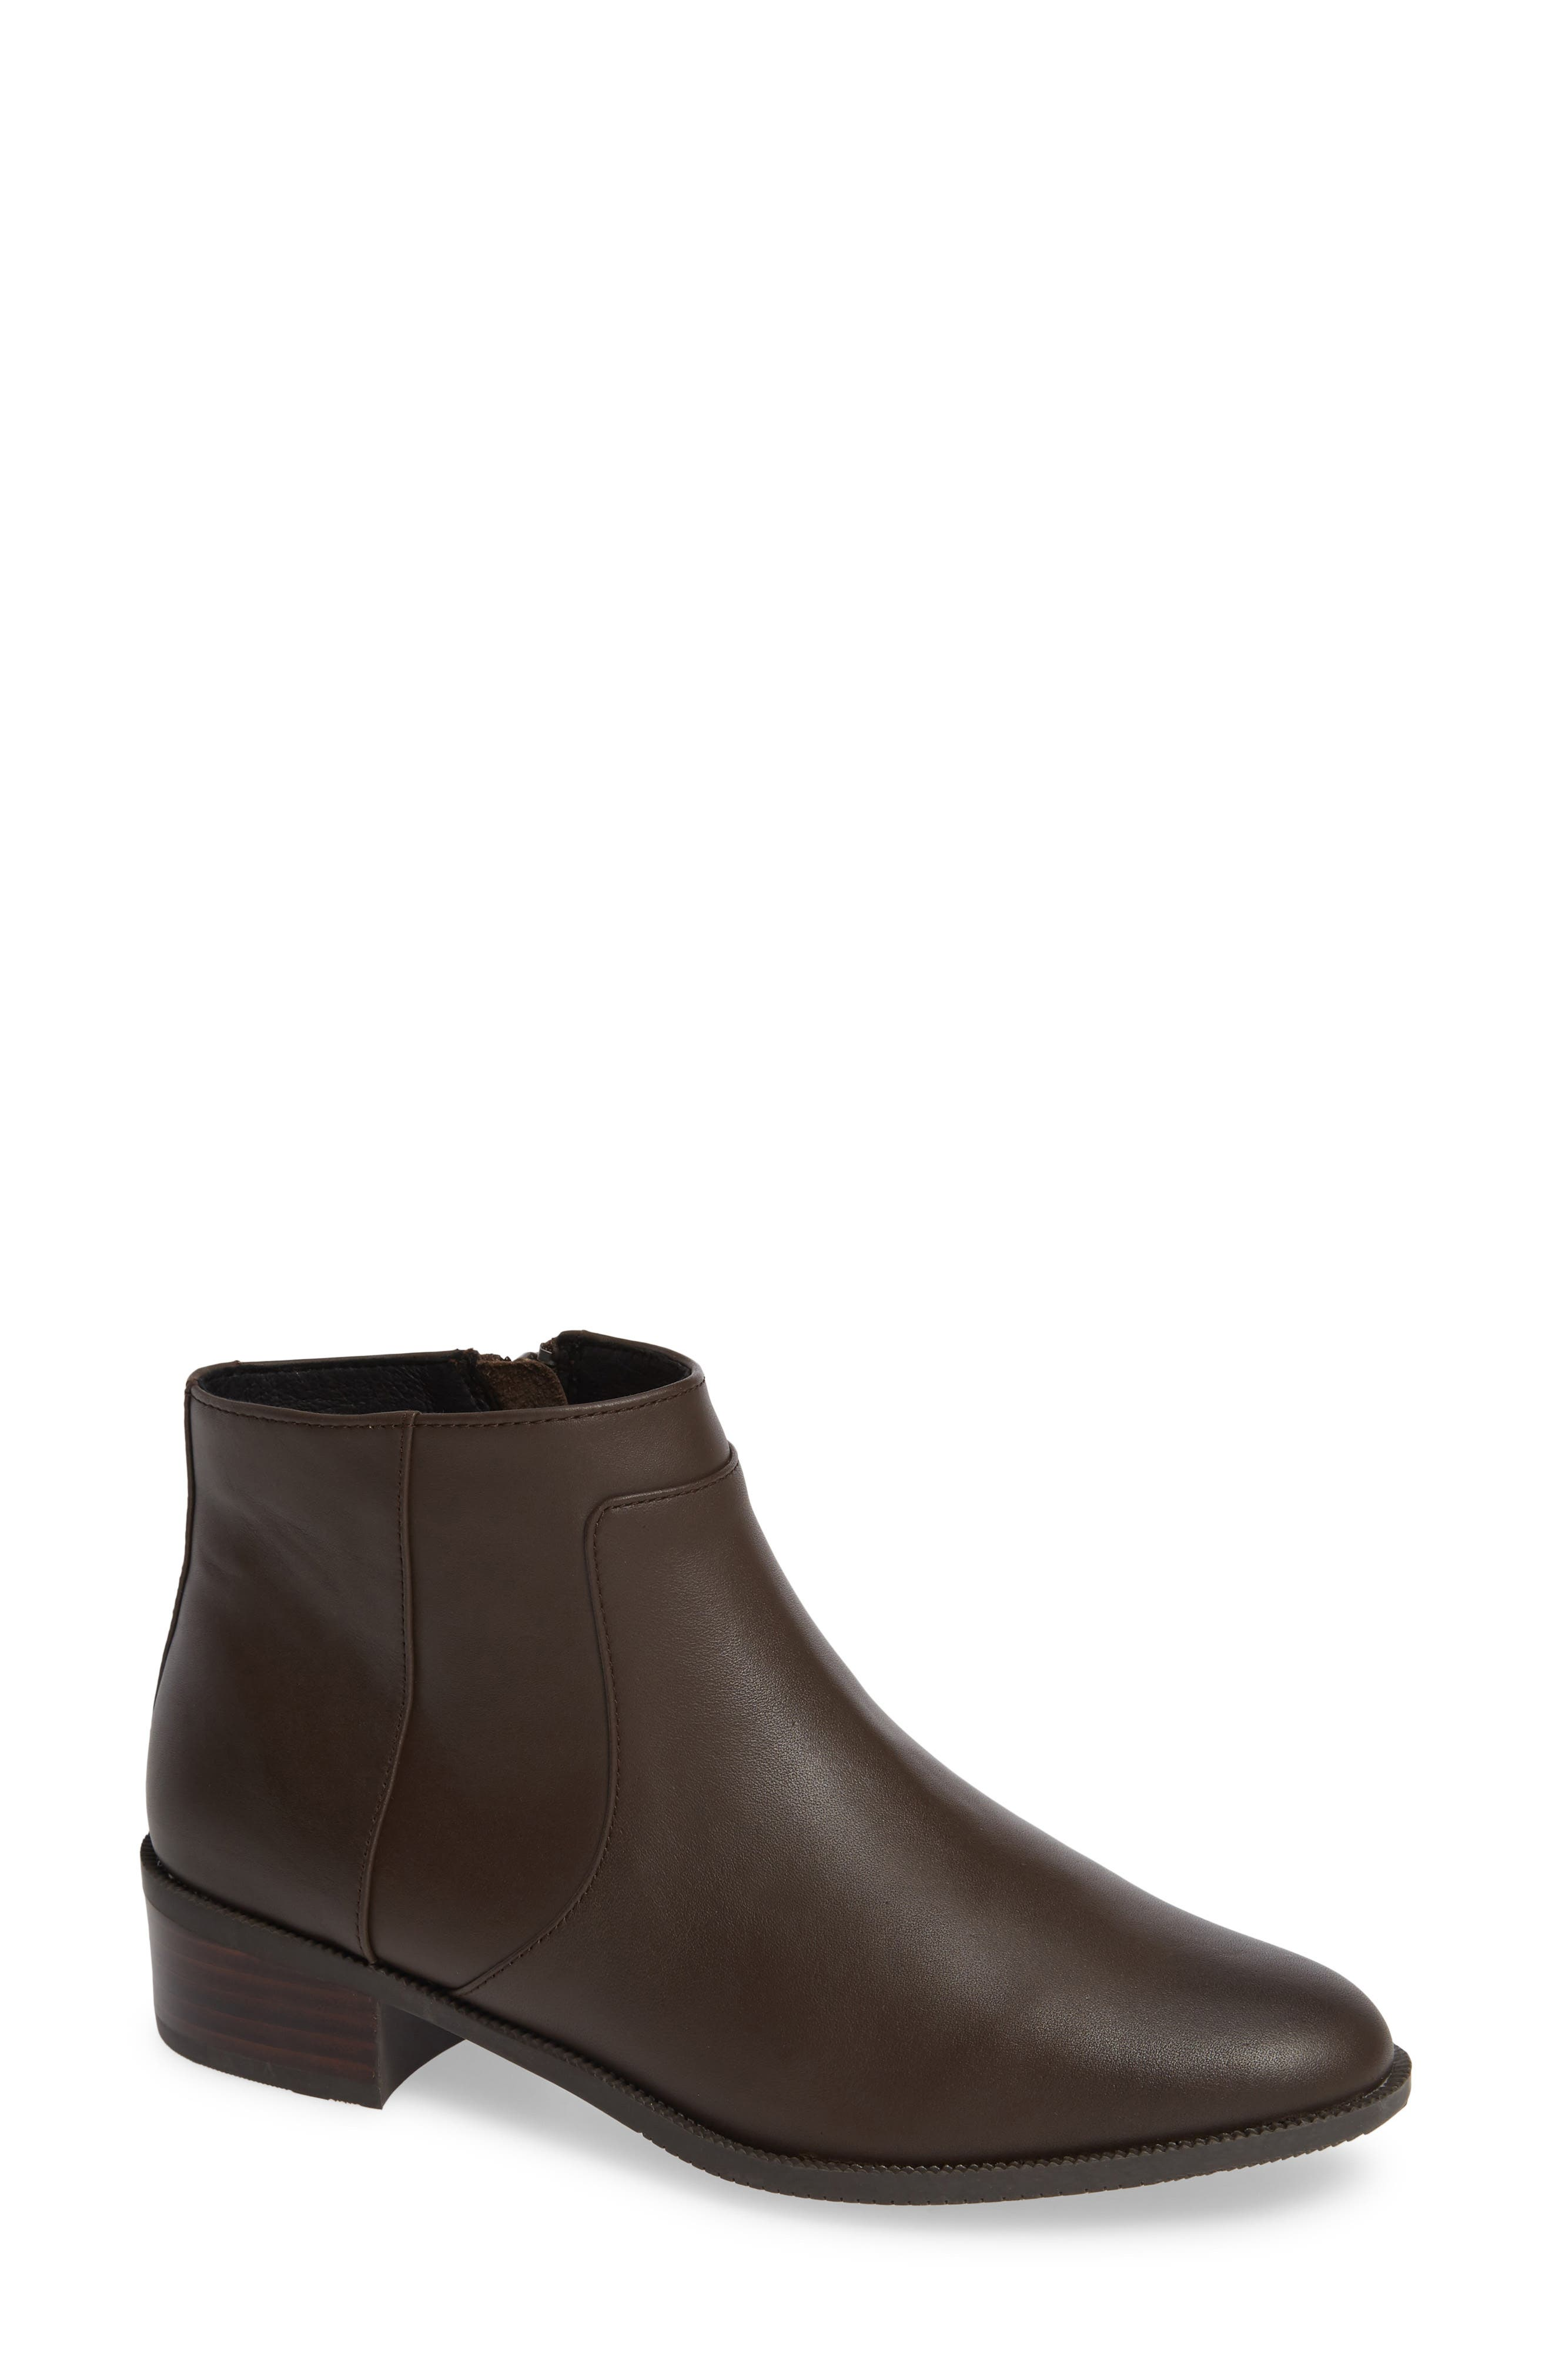 Benette Water Resistant Bootie, Main, color, CHOCOLATE LEATHER